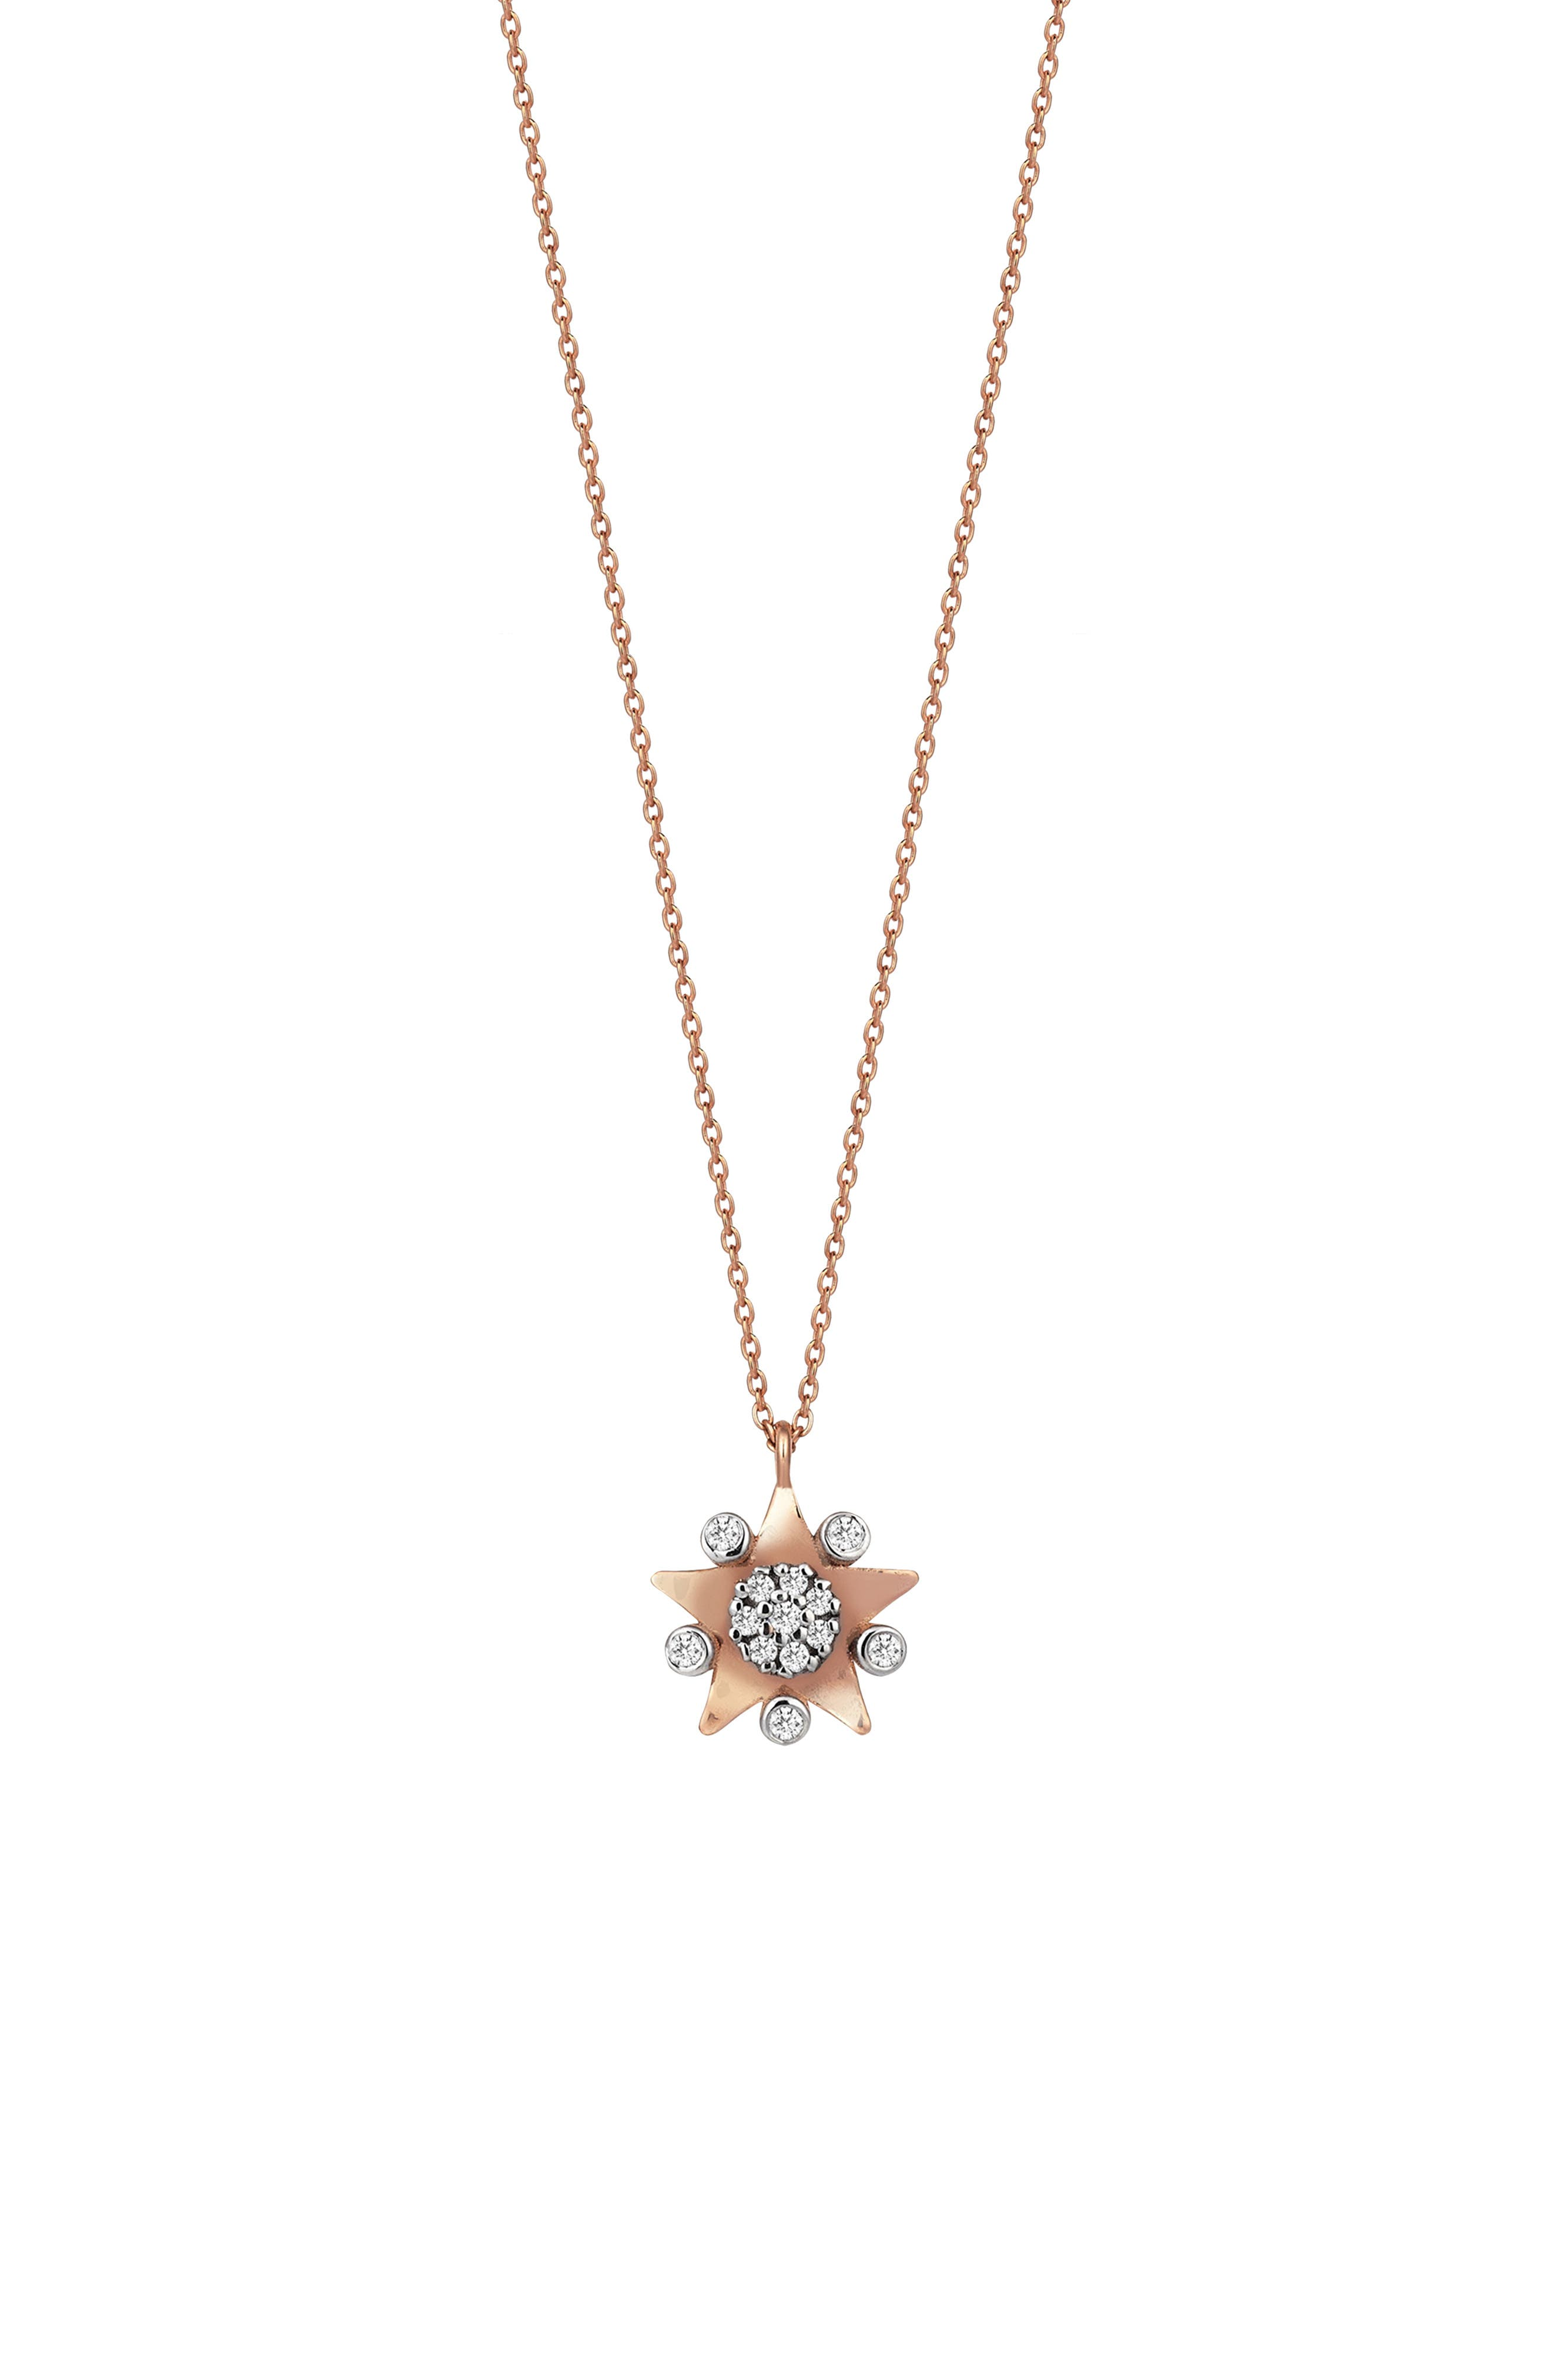 Eclectic Circle Pendant Necklace,                         Main,                         color, ROSE GOLD